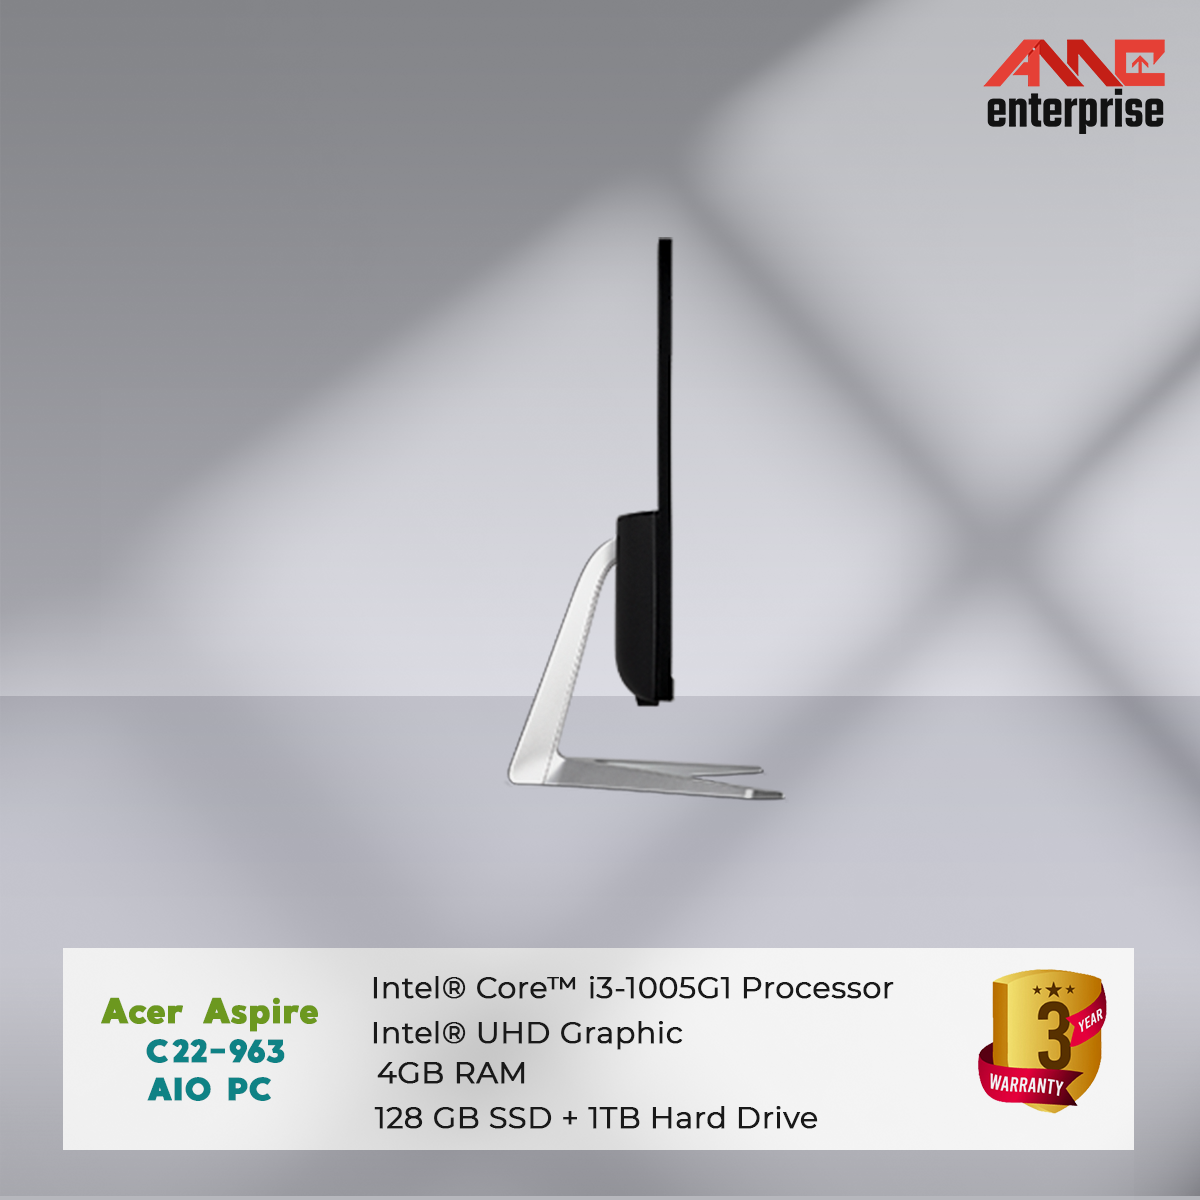 ACER Aspire C22-963 ALL-IN-ONE PC (6).png